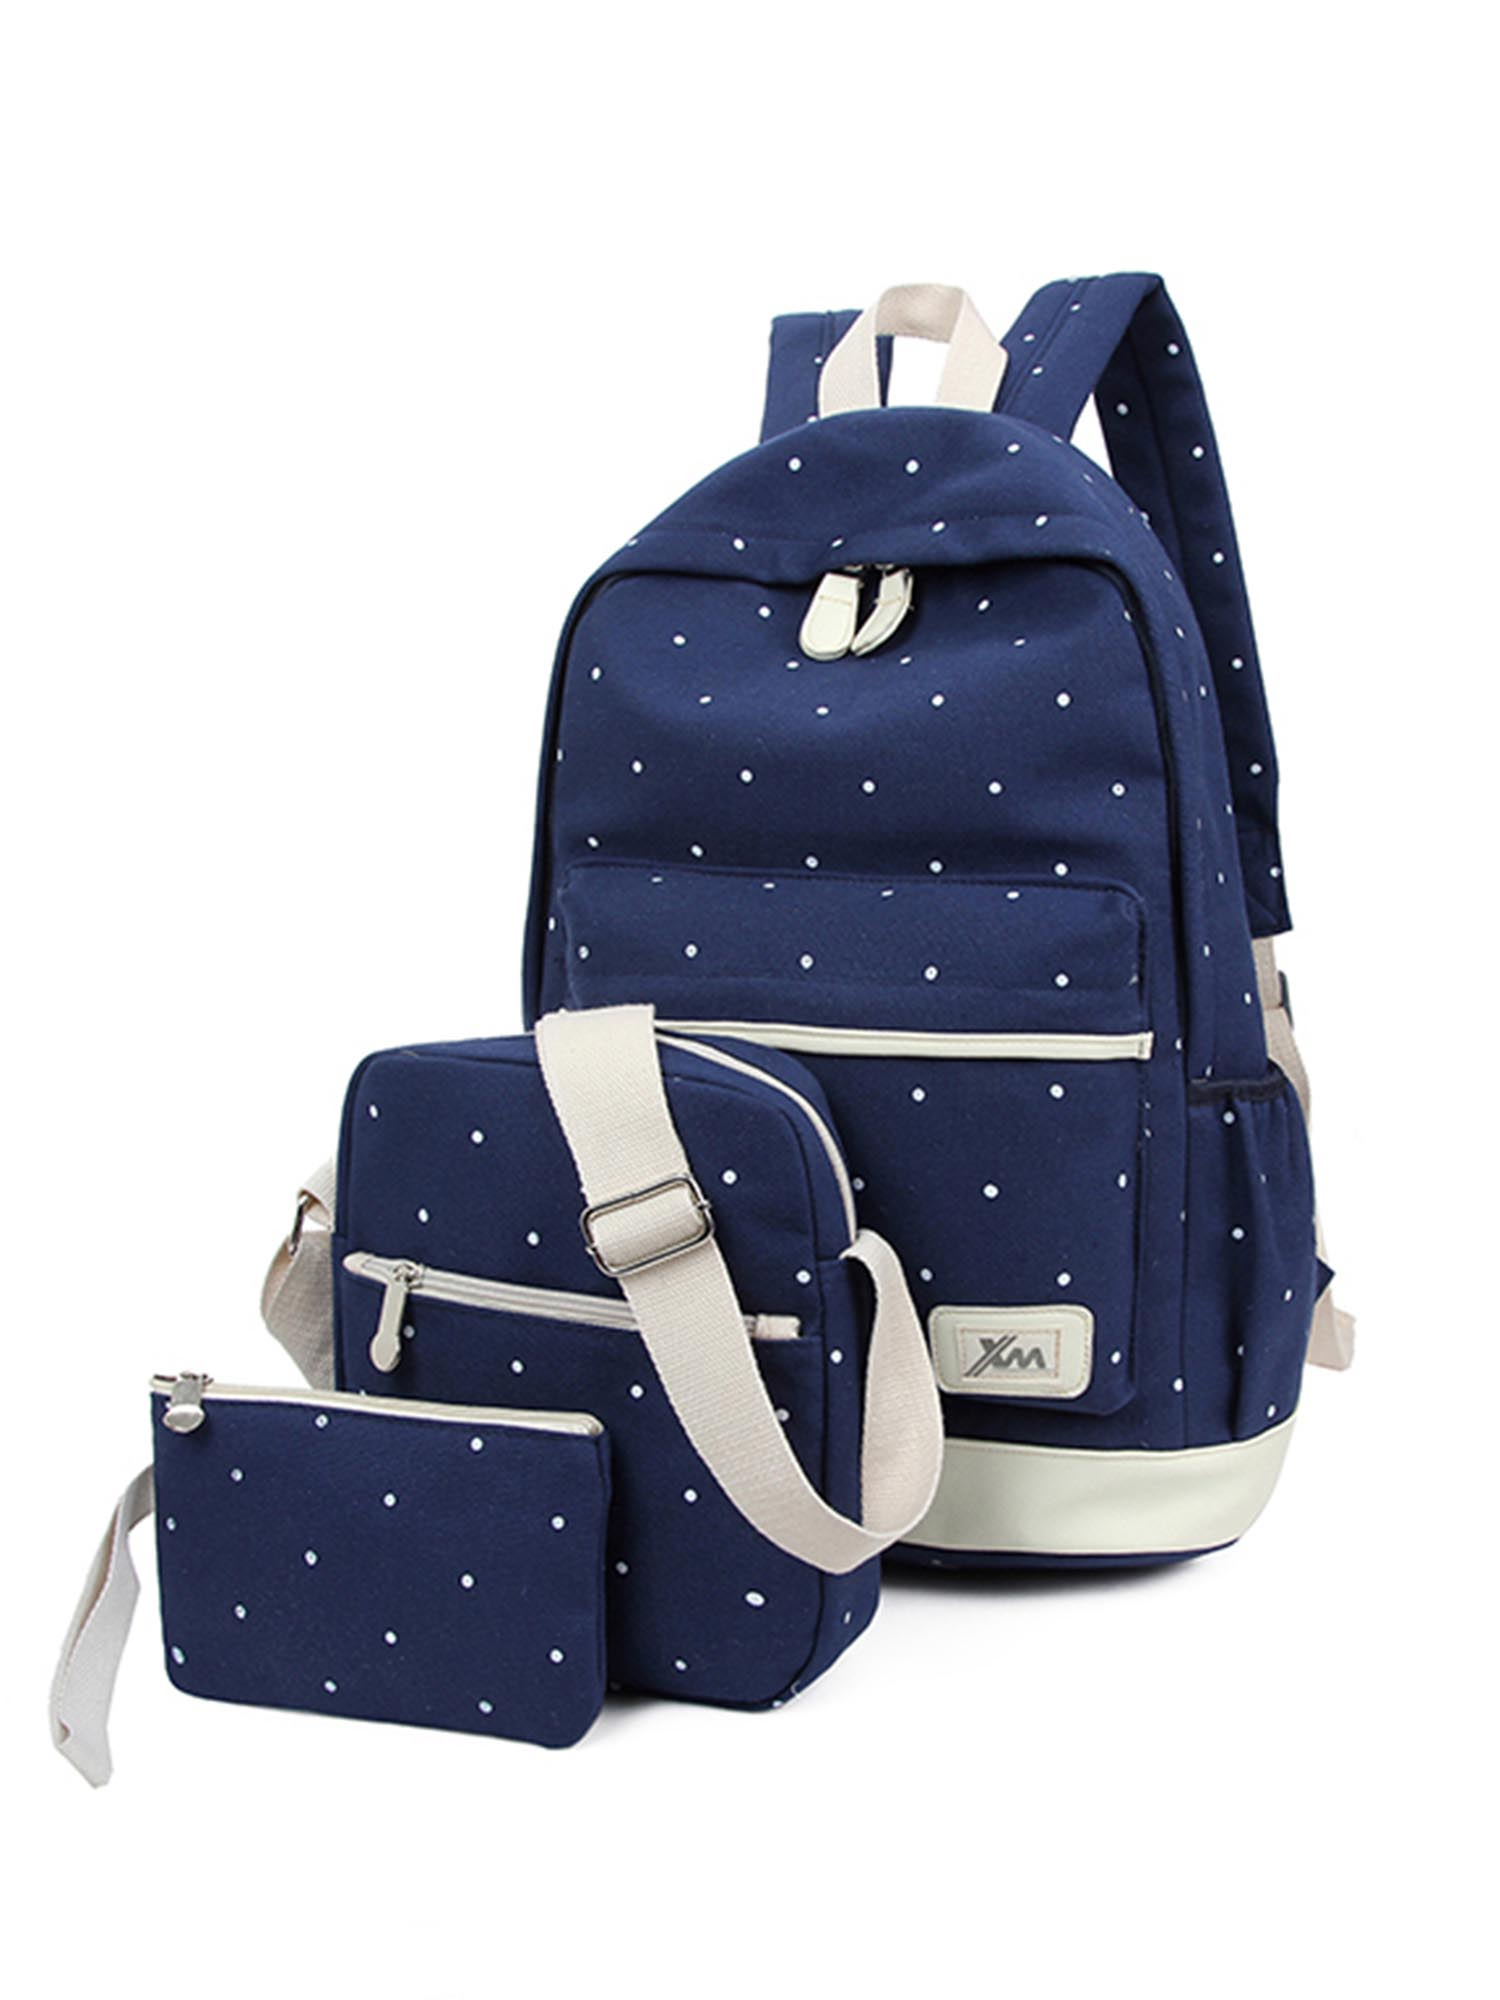 Rival Sons Fashion Casual Canvas Bag School College Backpack For Girls Black